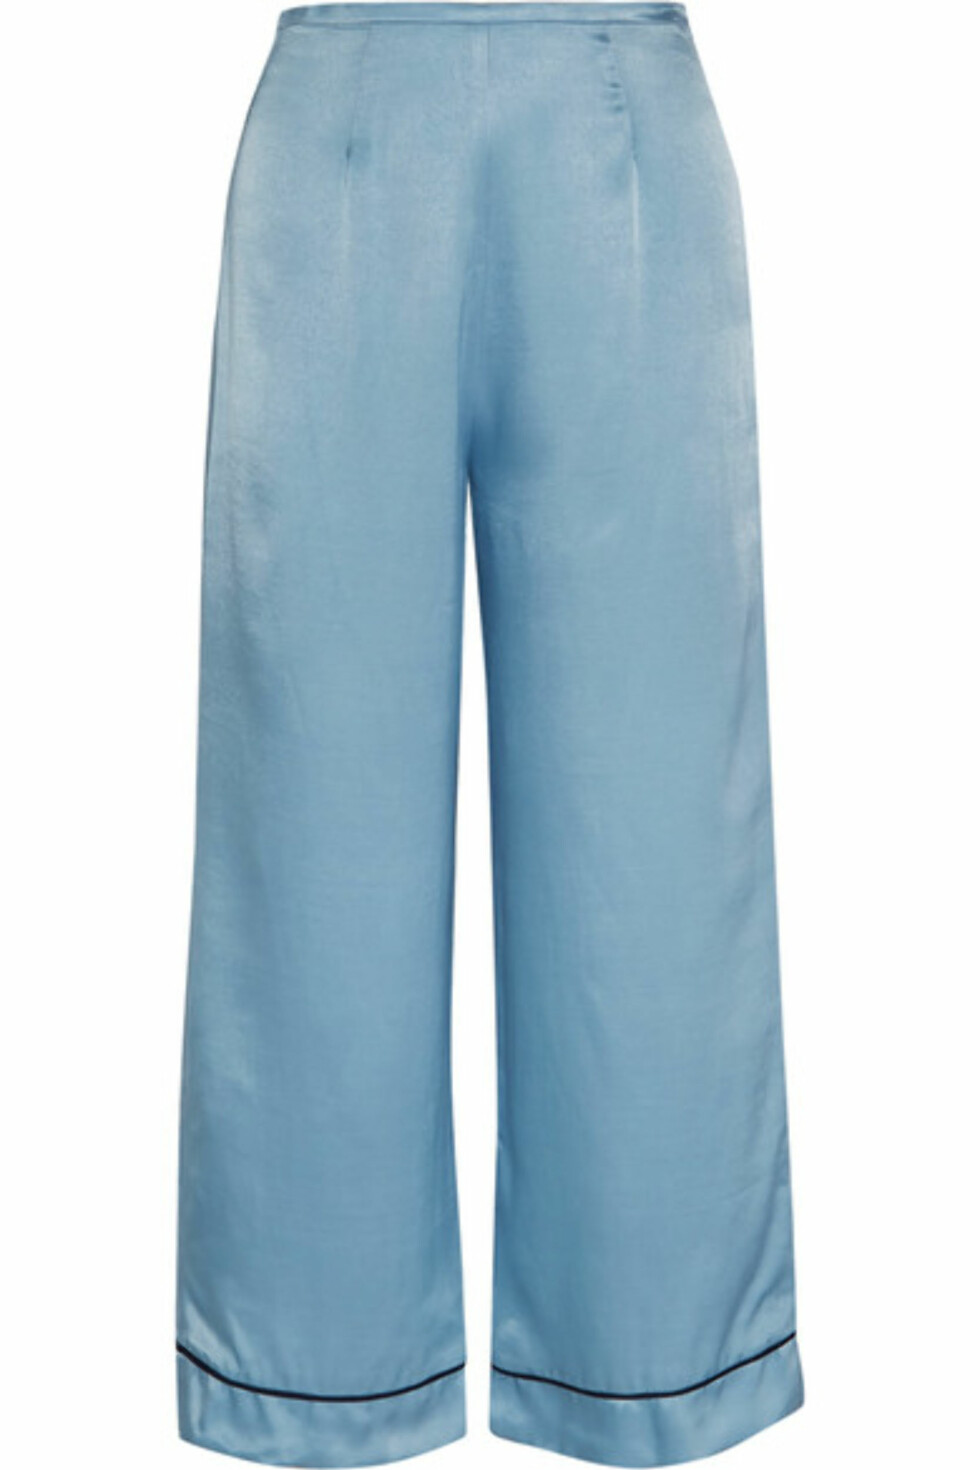 Bukse fra Staud via Net-a-porter.com |1080,-| https://www.net-a-porter.com/no/en/product/931301/staud/pietro-cropped-satin-wide-leg-pants